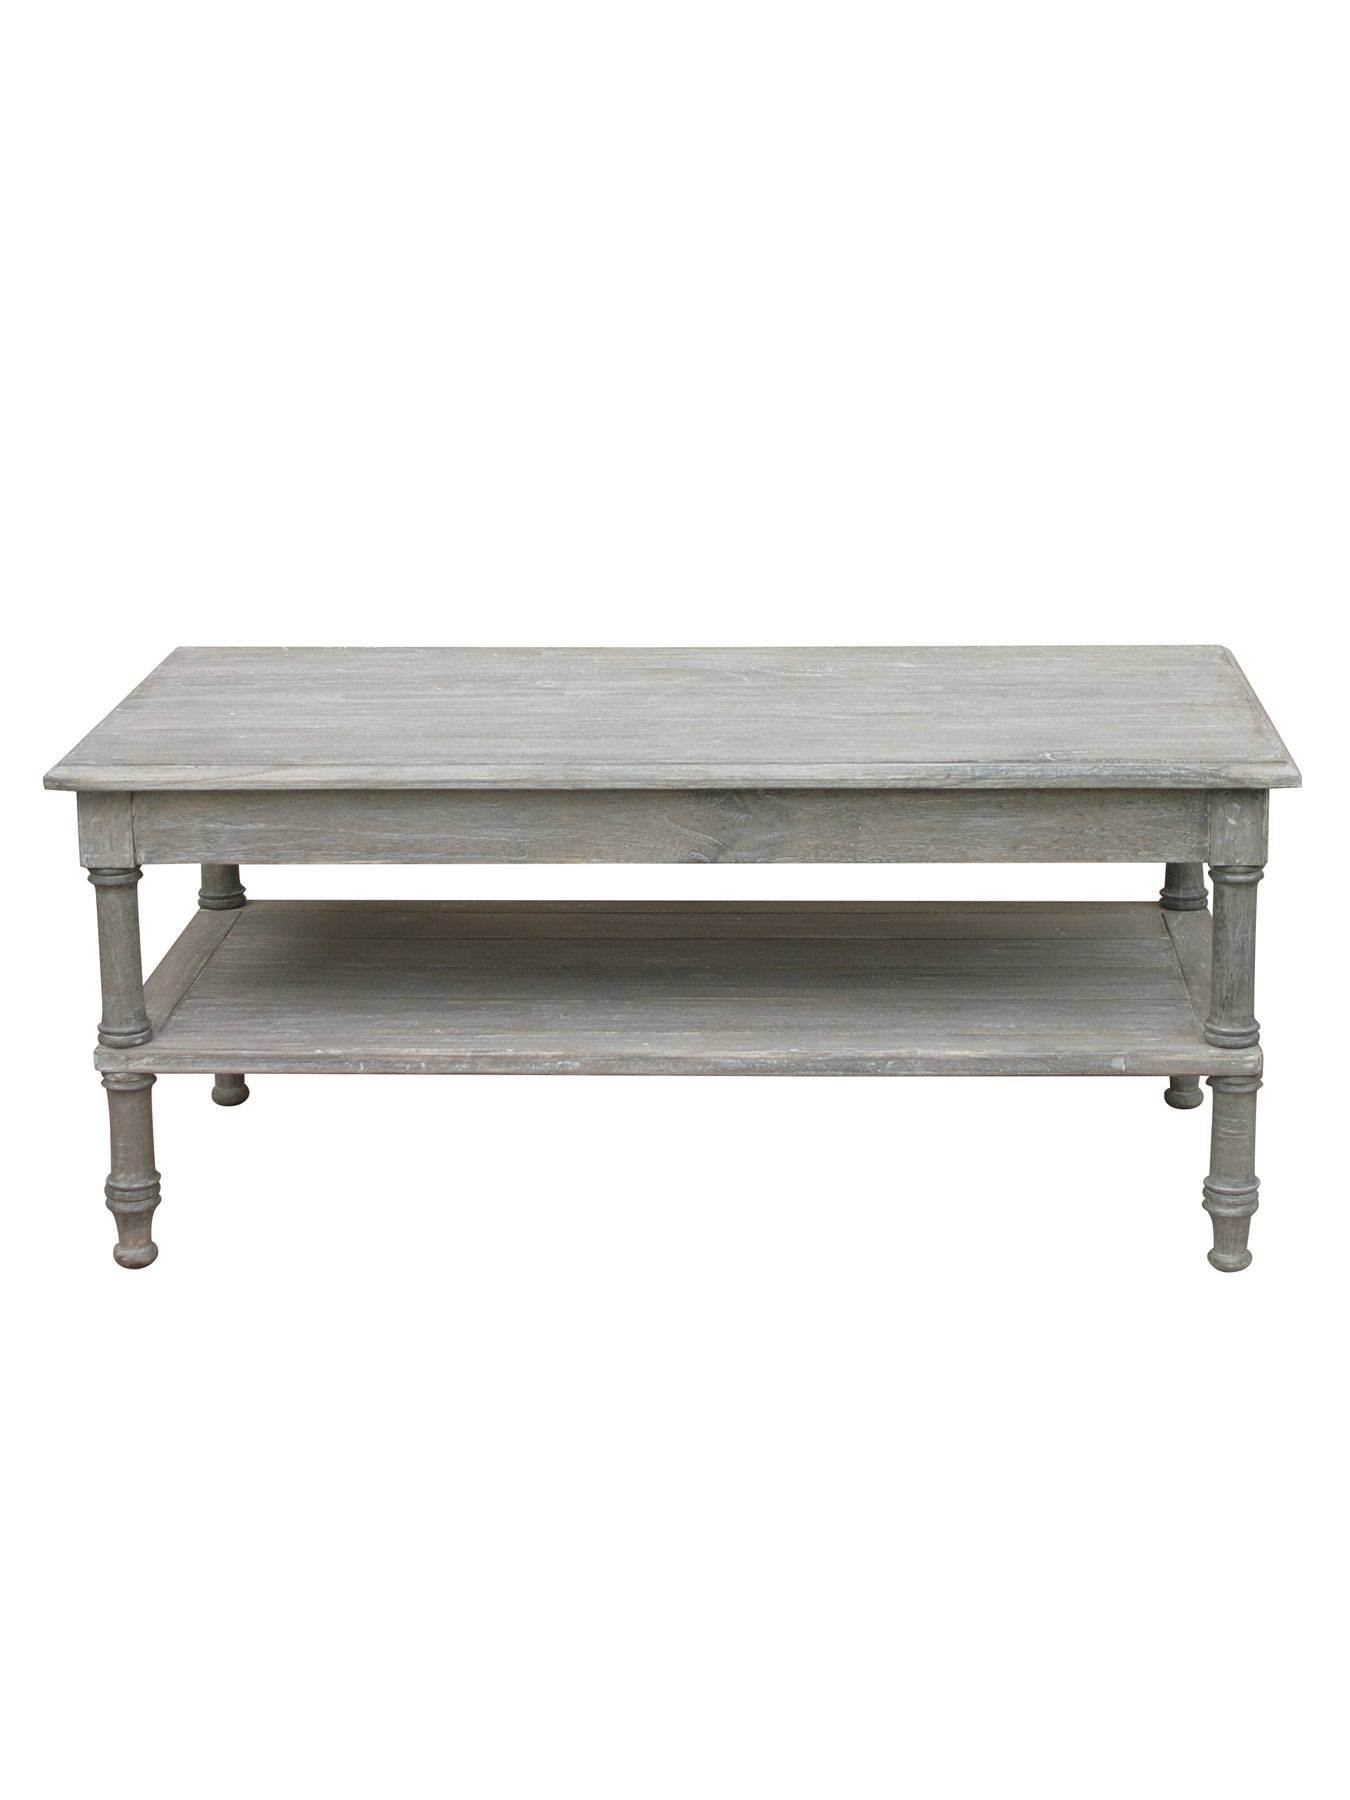 Colonial Coffee Table | Cottage Home® regarding Colonial Coffee Tables (Image 8 of 30)